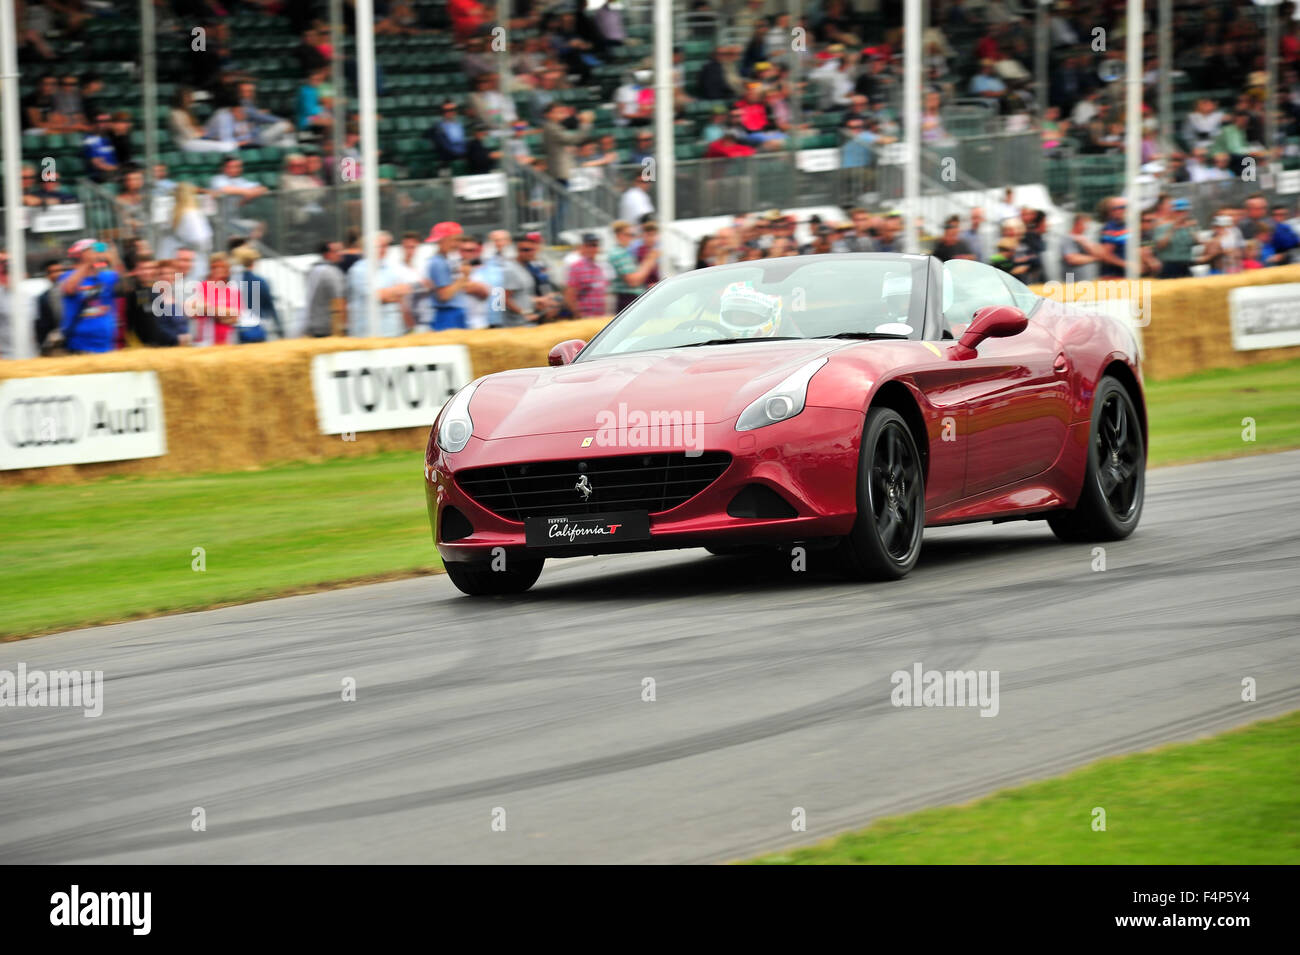 A Red Ferrari California T At The Goodwood Festival Of Speed In The Stock Photo Alamy